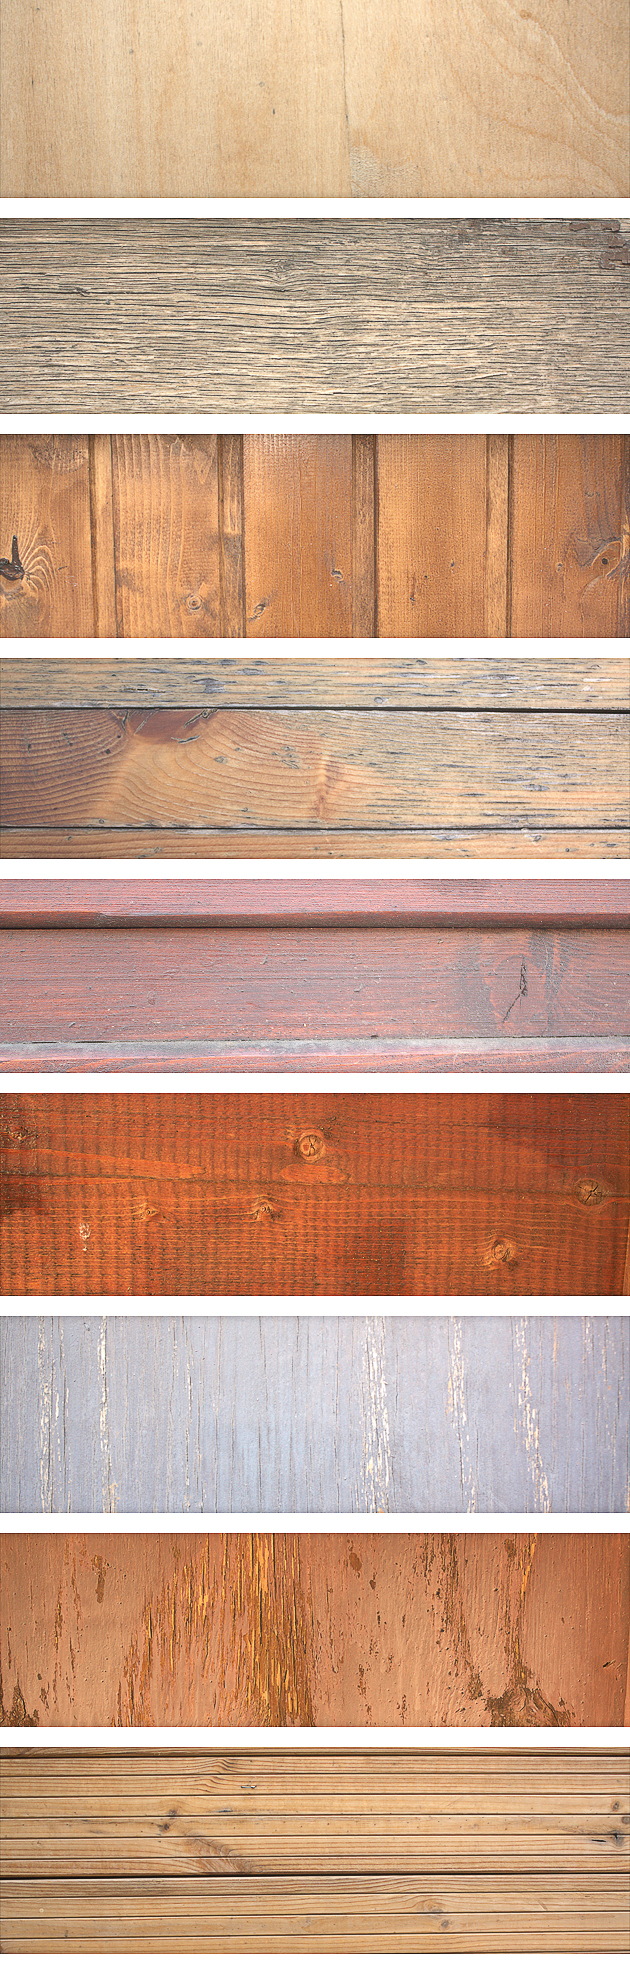 Wood Backgrounds Set 1 preview large1